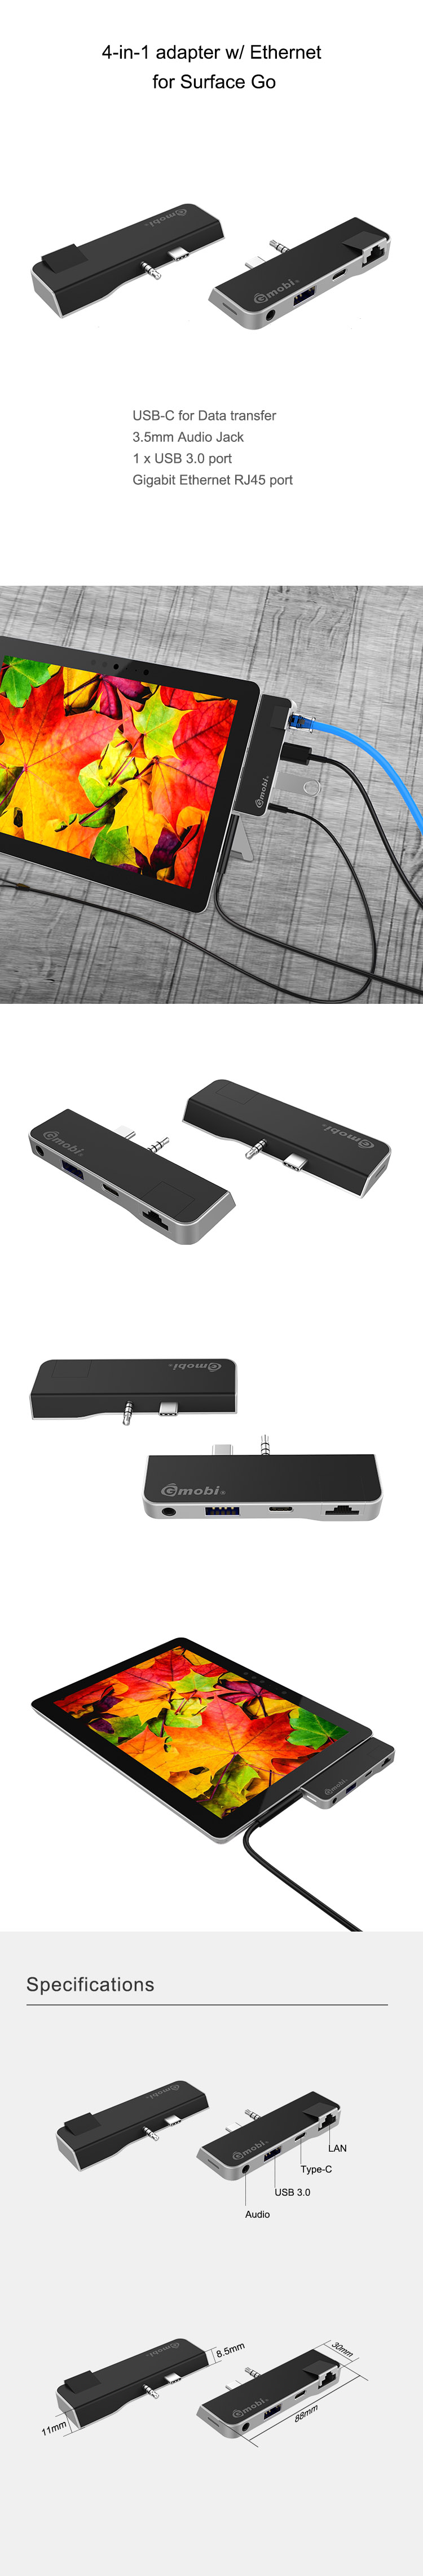 Gopod 4 in 1 Multiport Adapter Type c USB C Hub with ethernet ,3.5mm audio jack for Surface Go